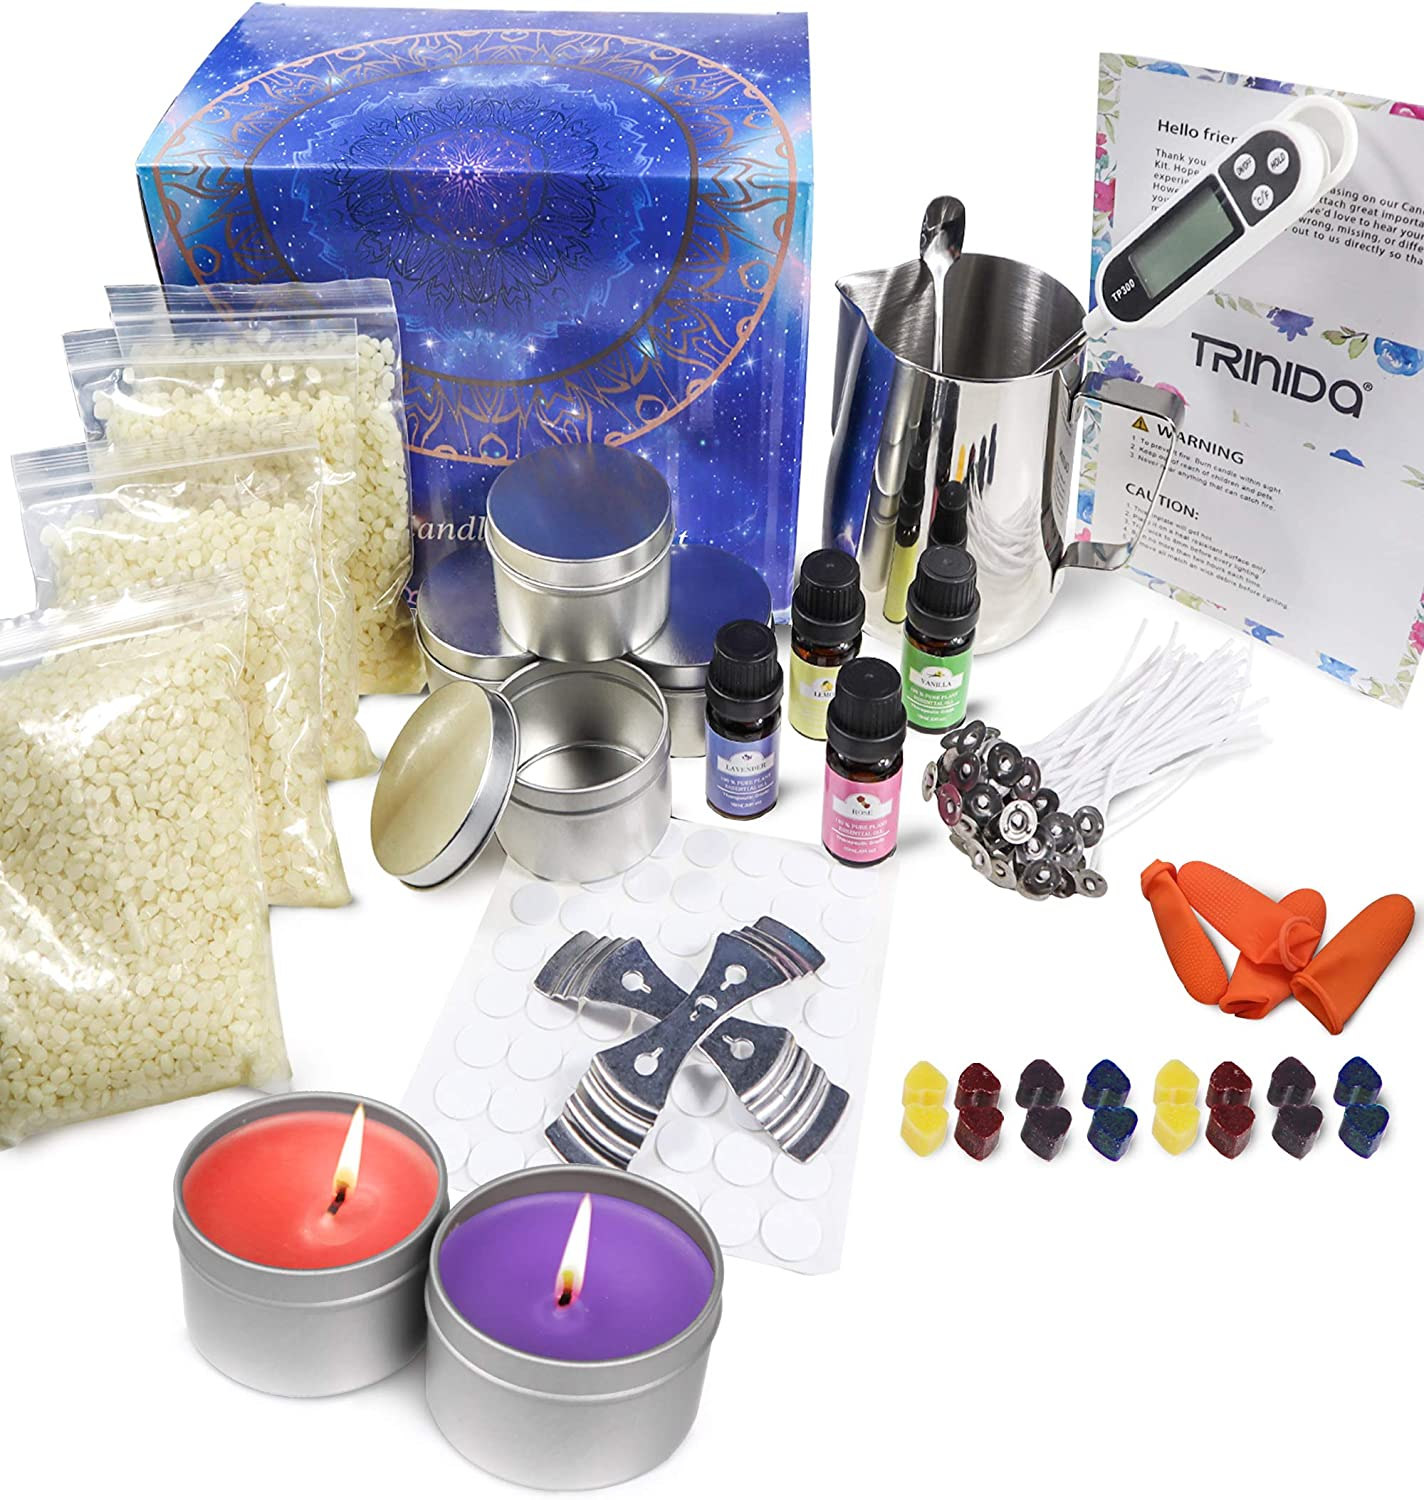 Check out 30 Best Candle Making Kits On Amazon at https://diyprojects.com/candle-making-kits/